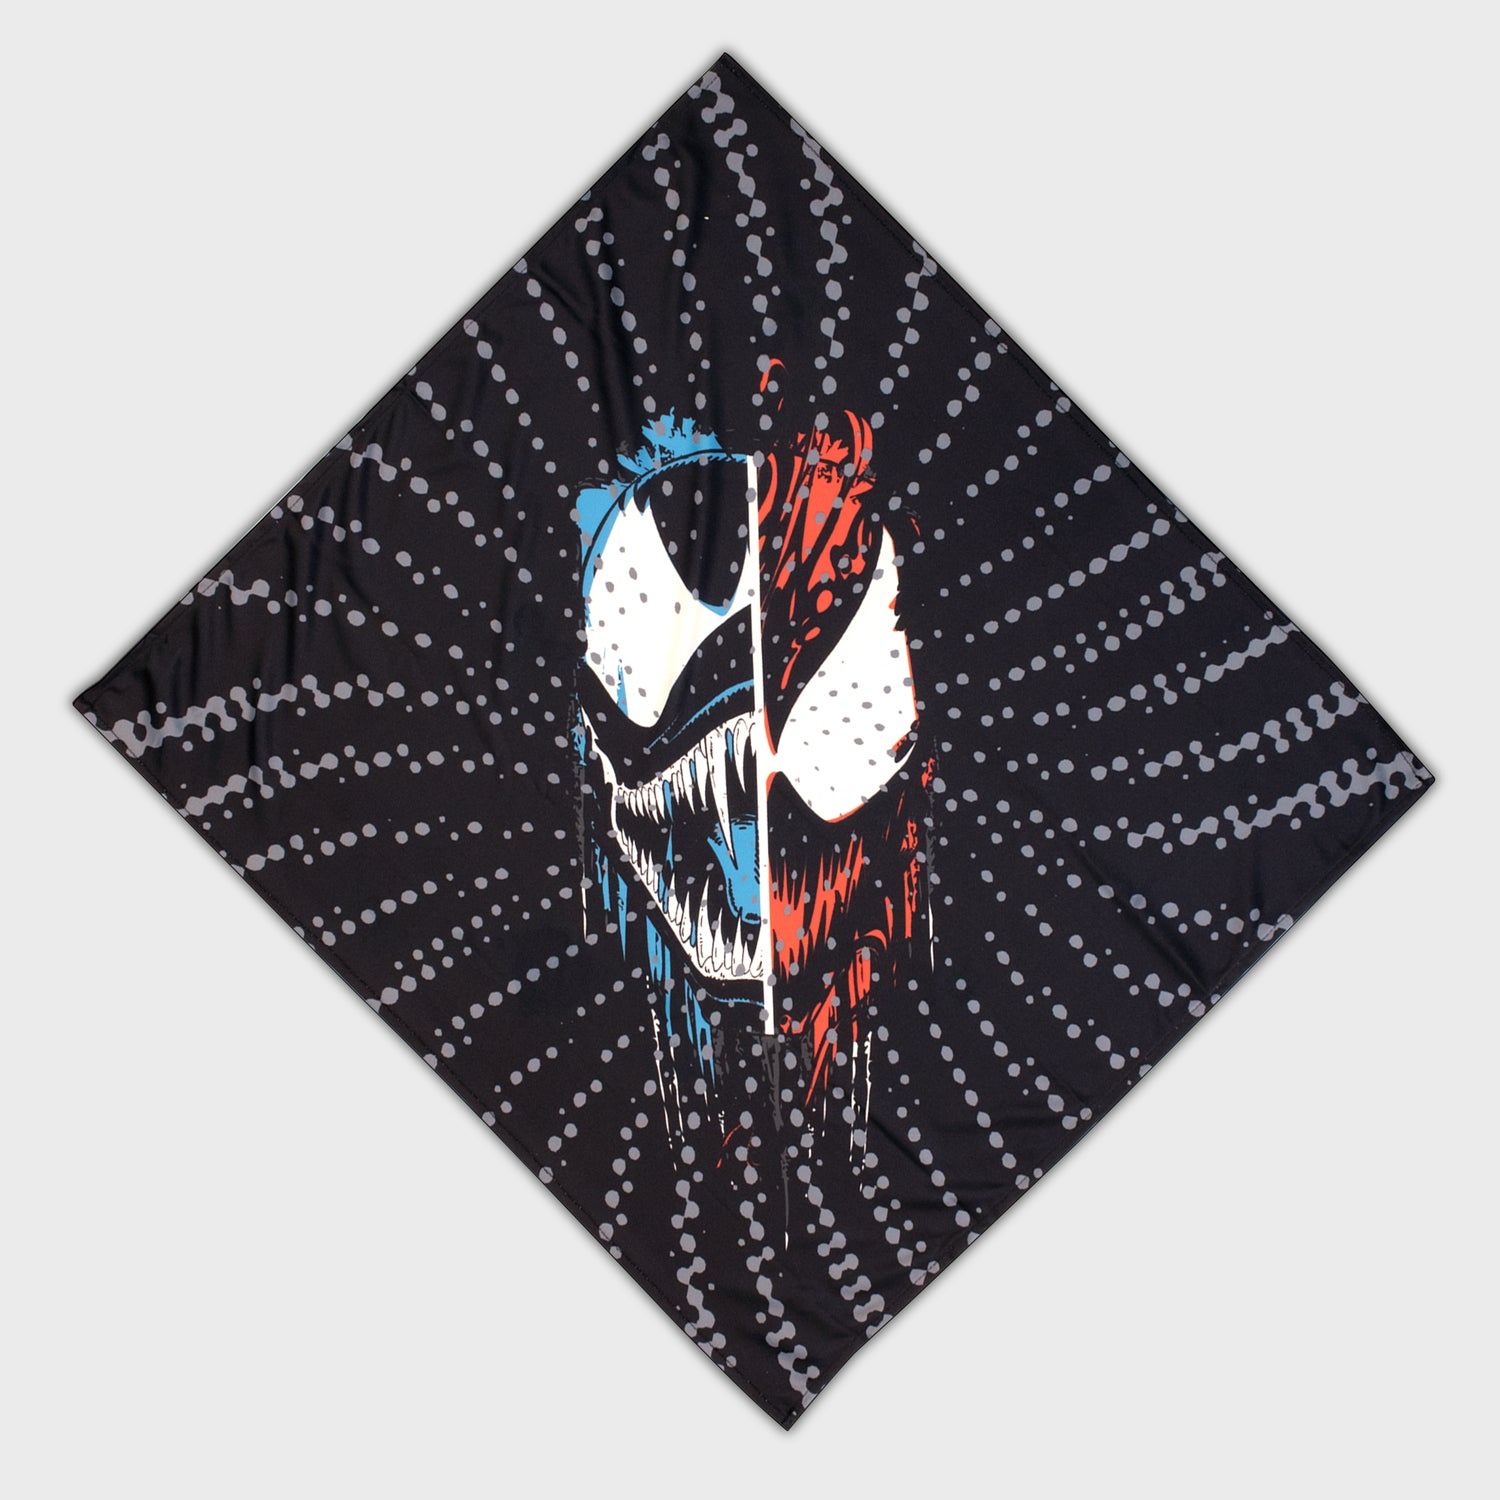 venom marvel spider-man comics collection collectibles exclusives collector's box culturefly bandana accessory